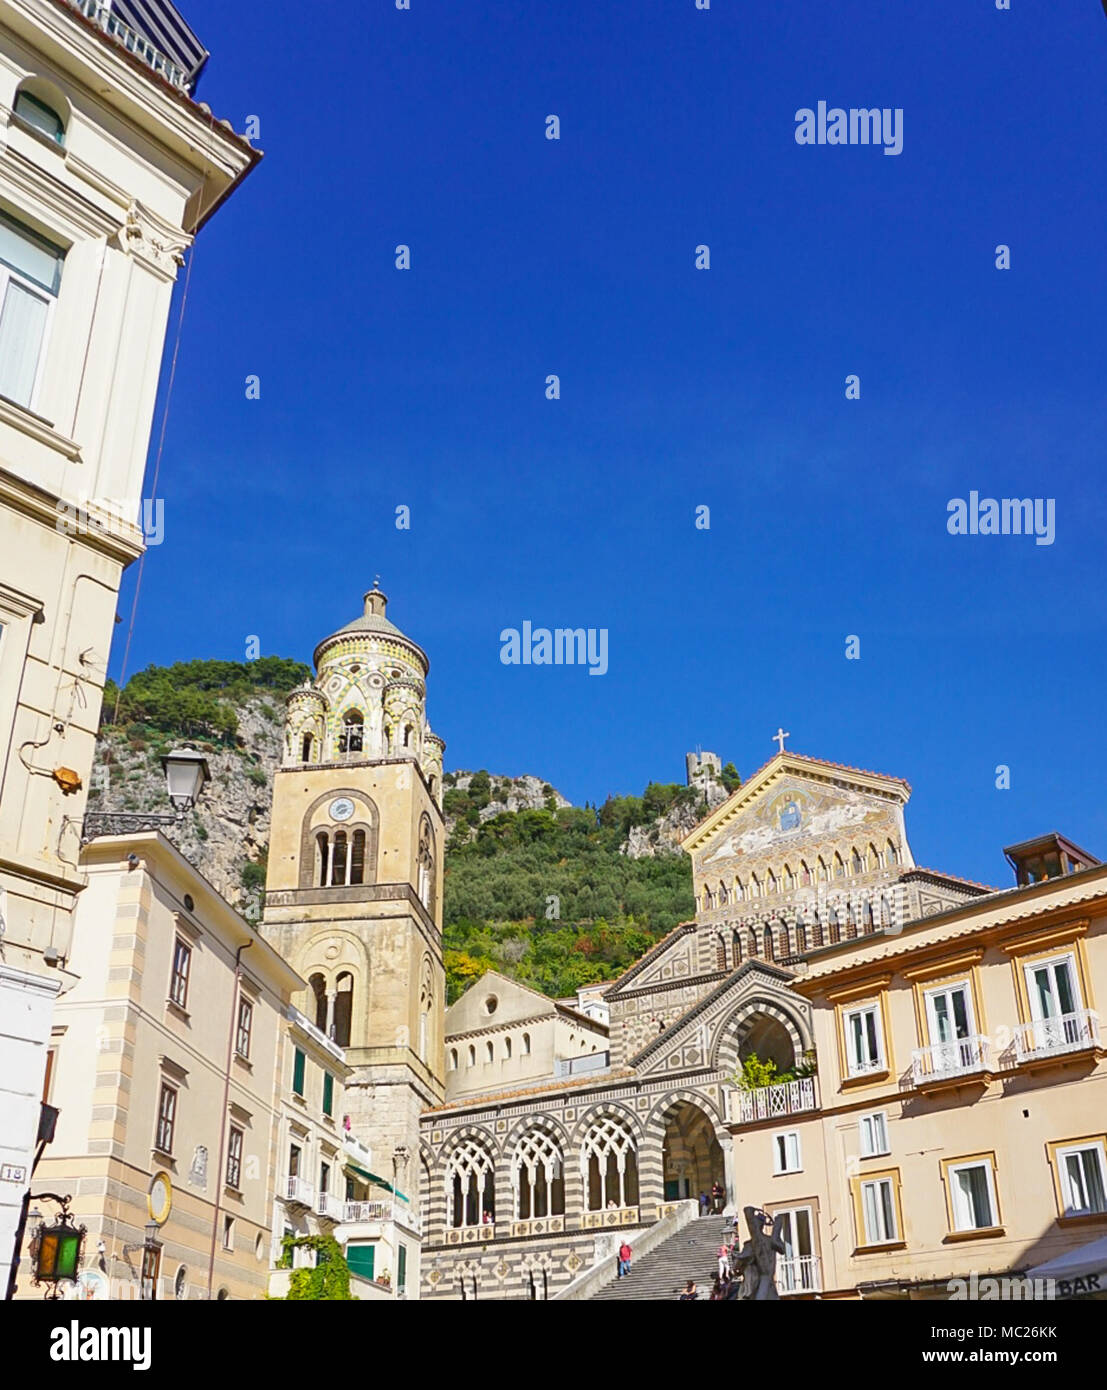 The Amalfi Cathedral dedicated to the Apostle Saint Andrew in the Piazza del Duomo in Amalfi Italy off the coast of Salerno Gulf on the Tyrrhenian Sea Stock Photo